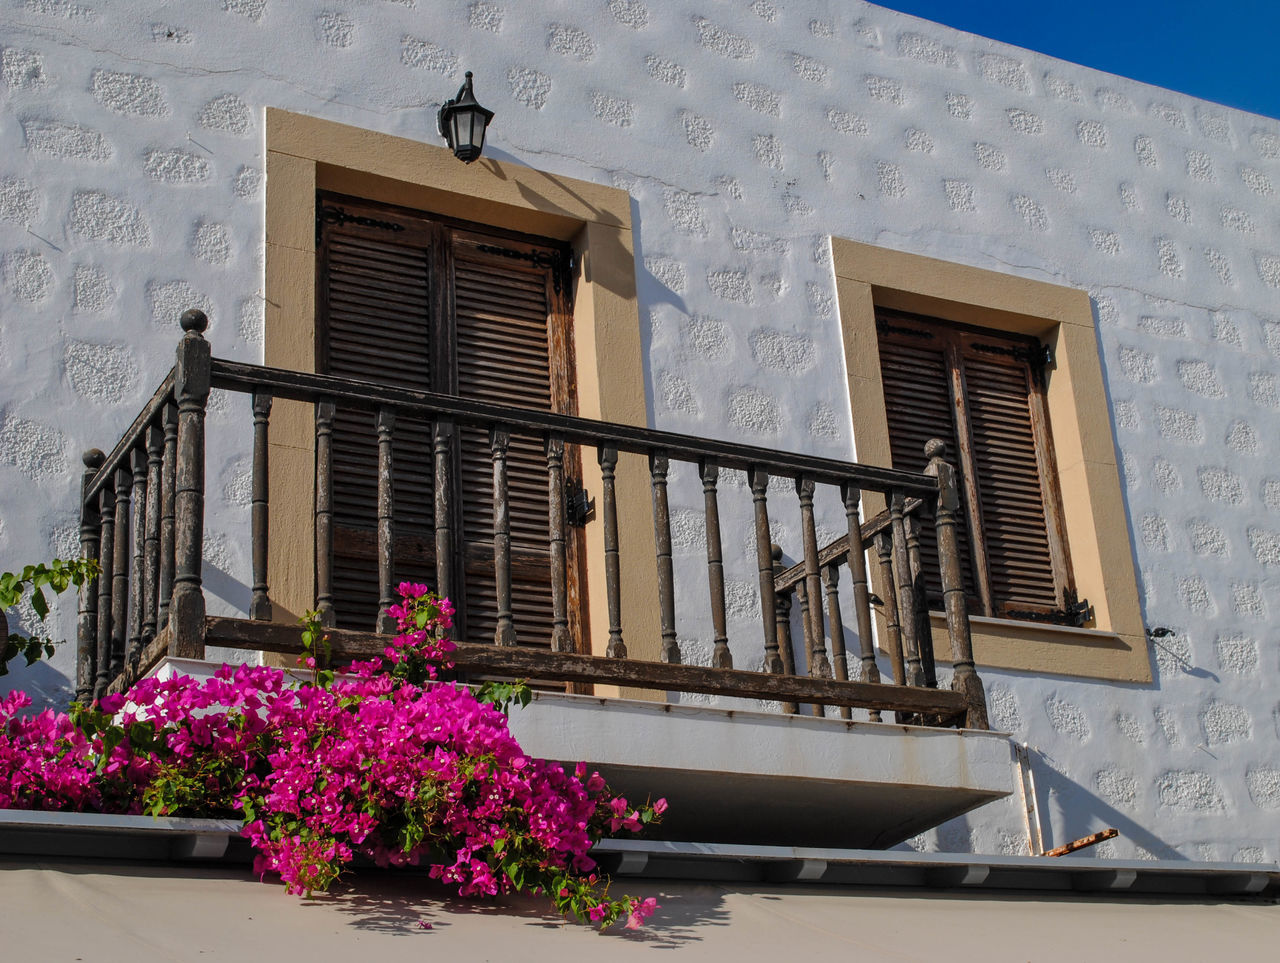 architecture, built structure, building exterior, window, low angle view, no people, day, outdoors, flower, window box, nature